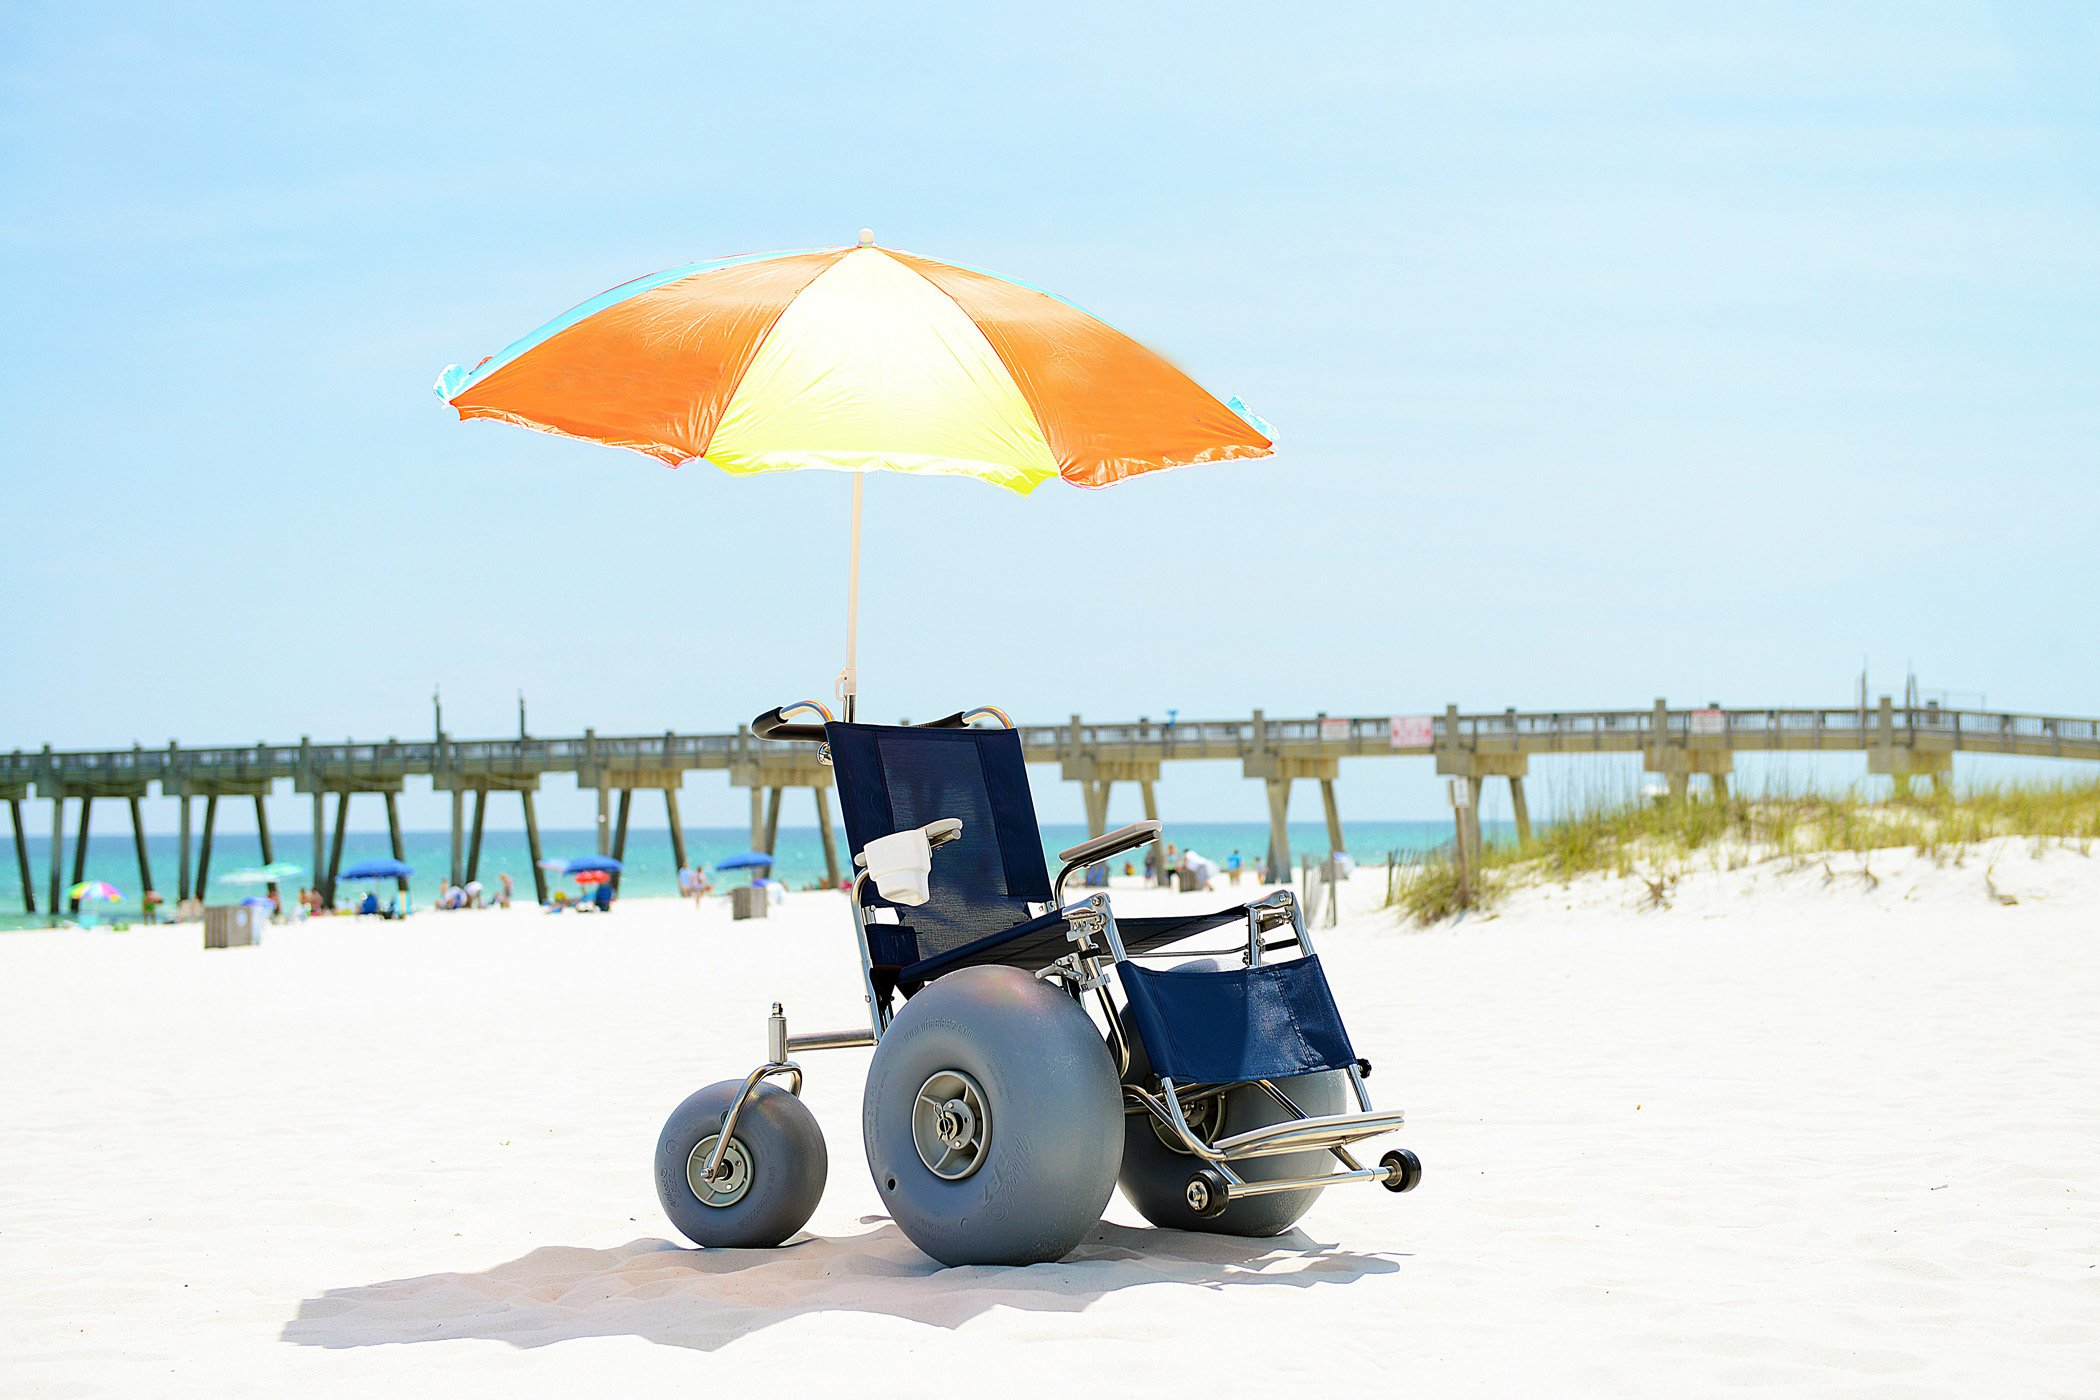 Beach Accessible Wheelchair with Umbrella - Easily pushes through beach sand includes elevated leg rest